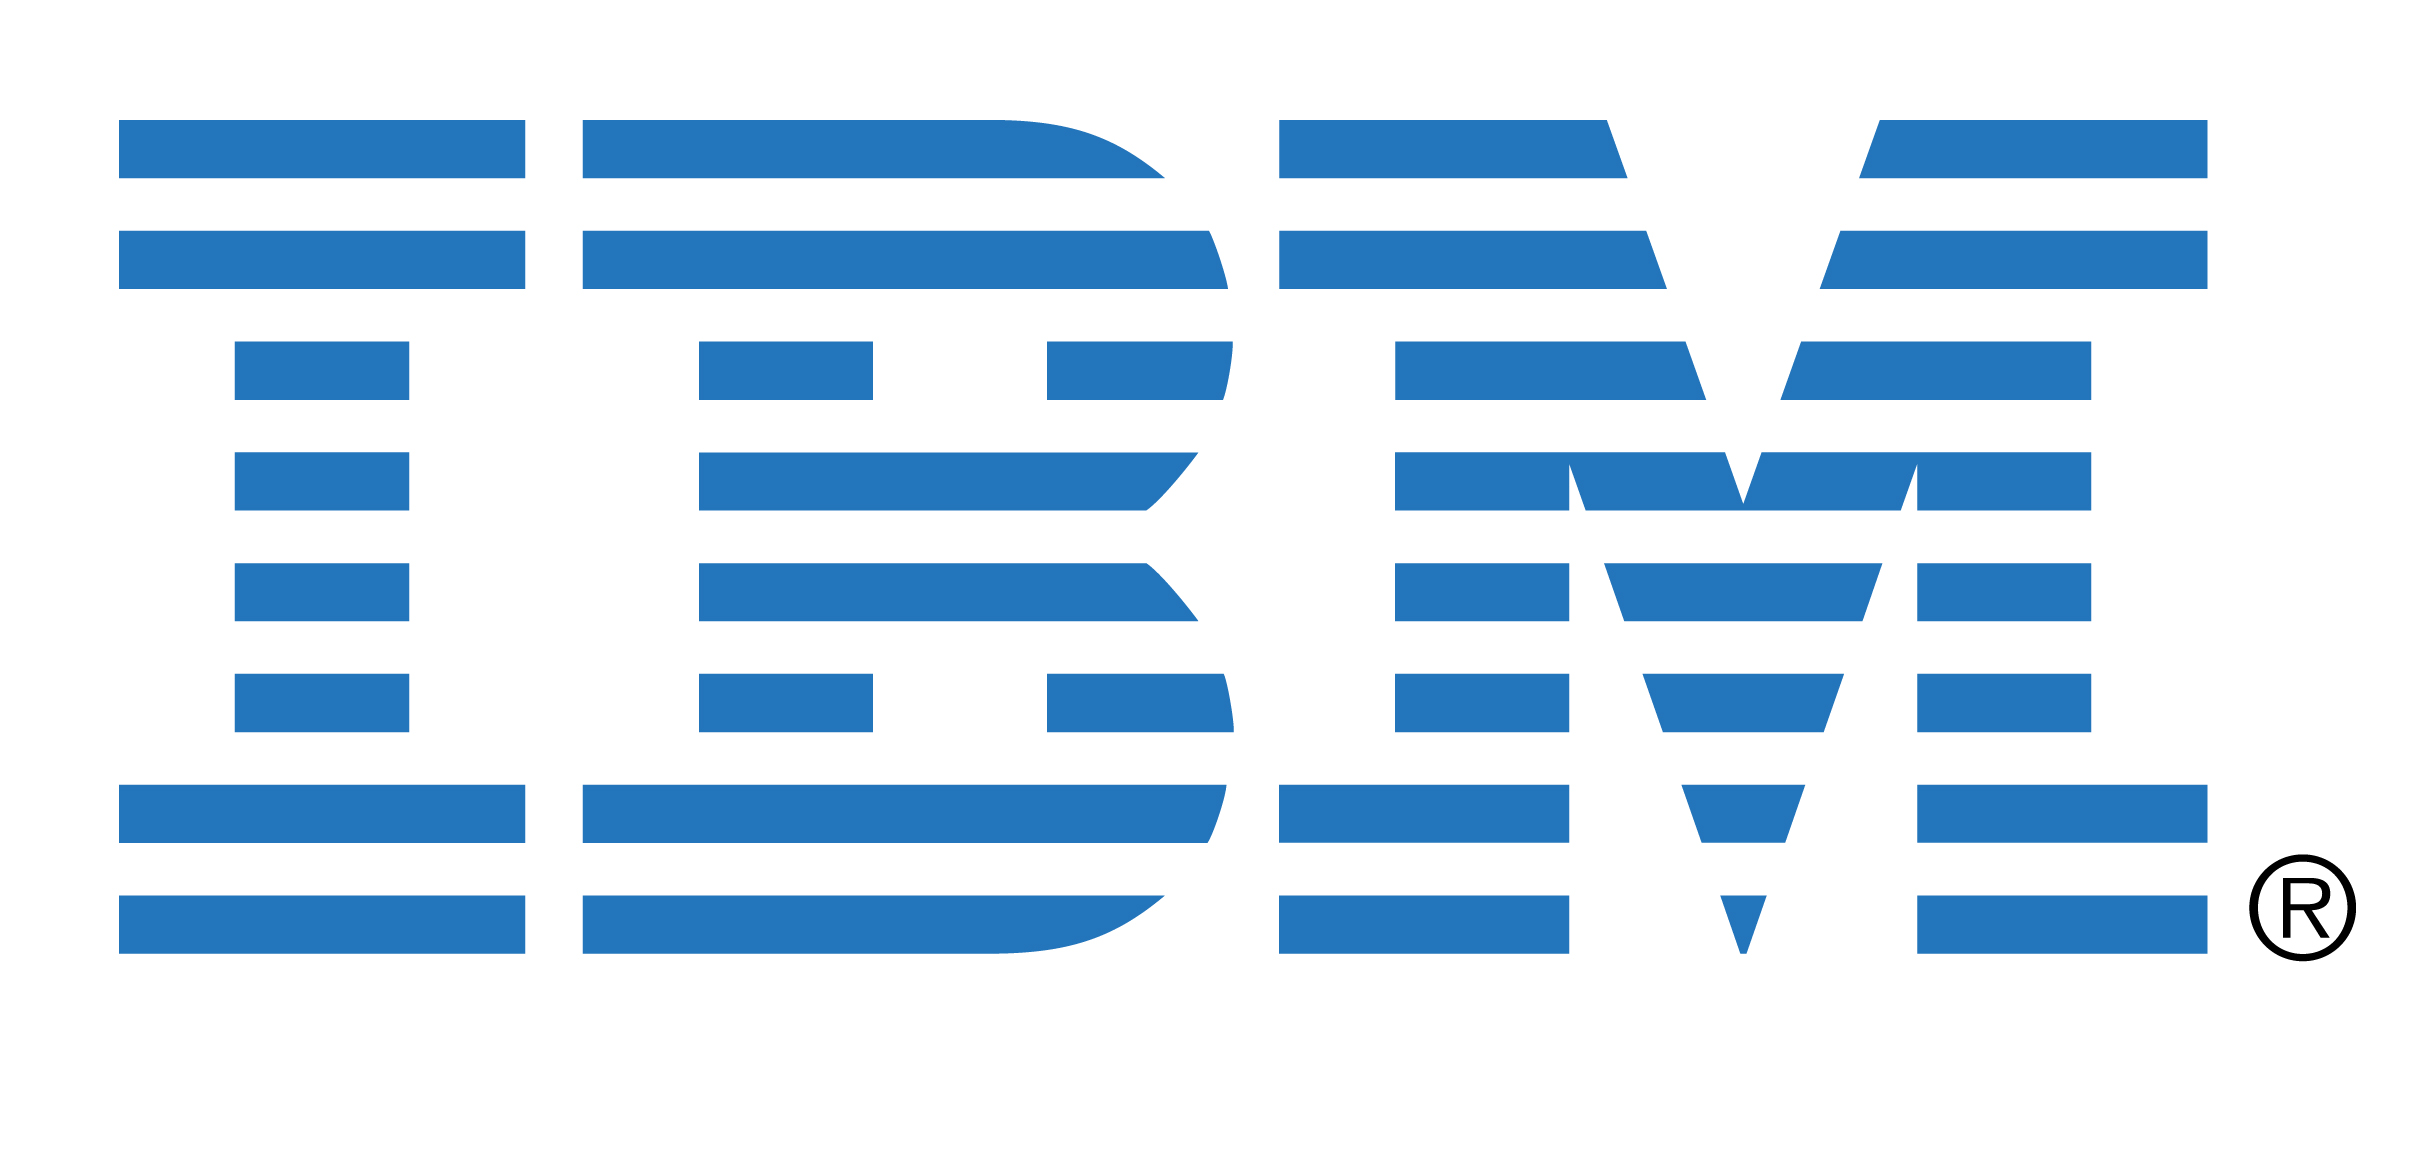 IBM-logo - Copy.jpg